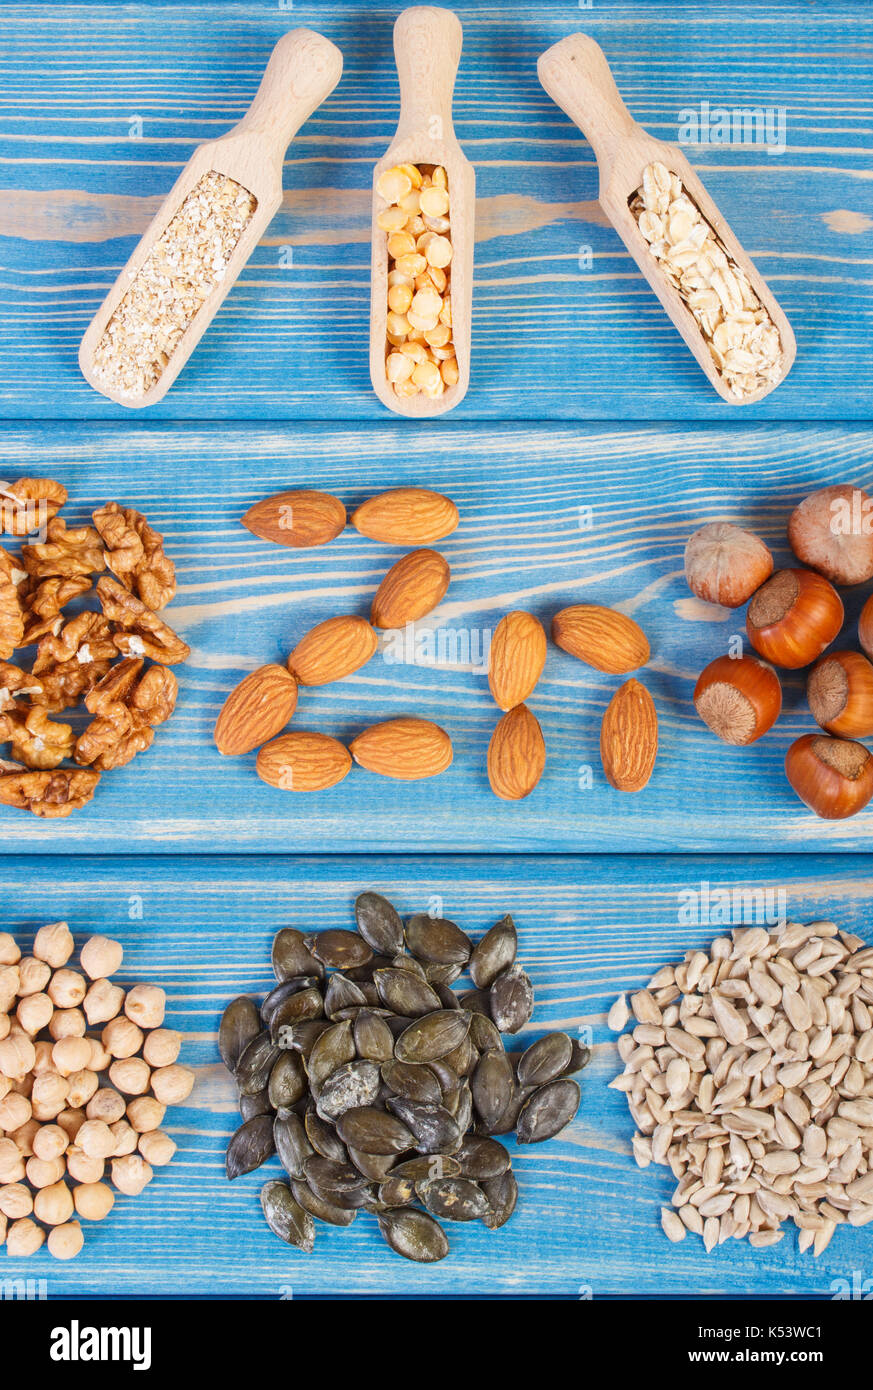 Inscription Zn, ingredients or products containing zinc and dietary fiber, natural sources of minerals, healthy lifestyle and nutrition - Stock Image